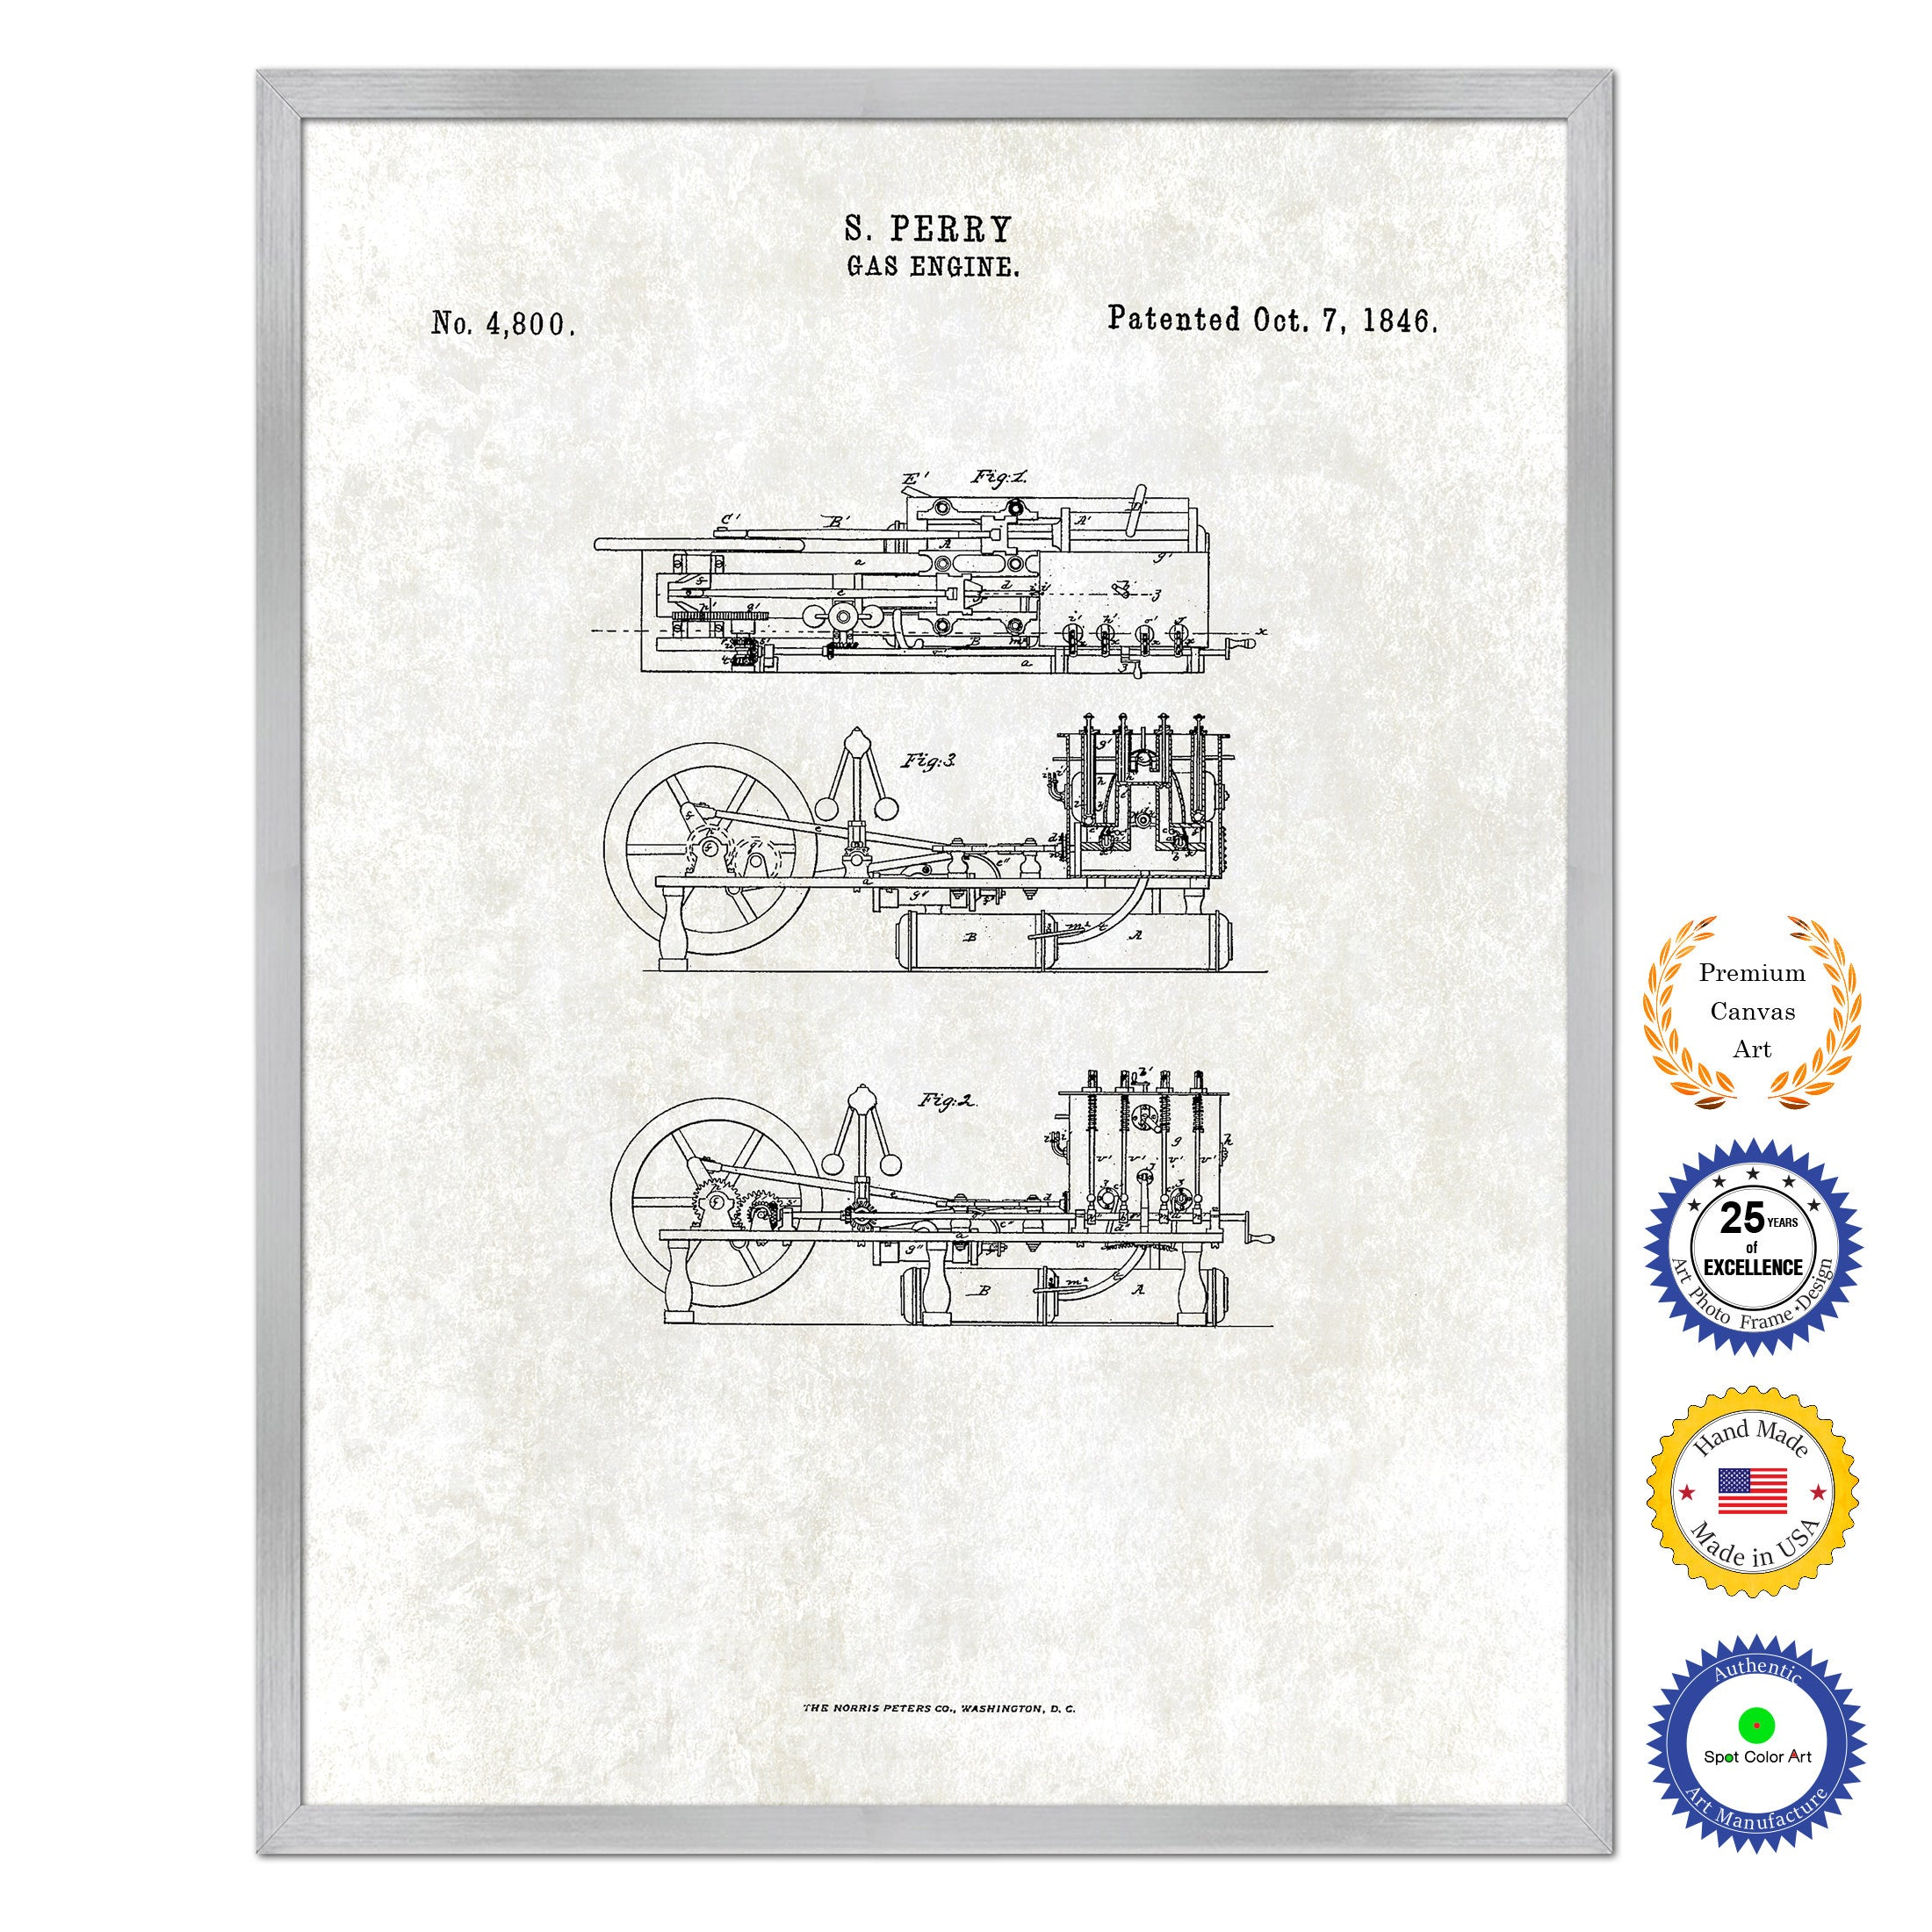 Old Gas Engine Diagram Reinvent Your Wiring Car 1846 Vintage Patent Artwork Silverframed Canvas Print Rh Spotcolorart Com 4